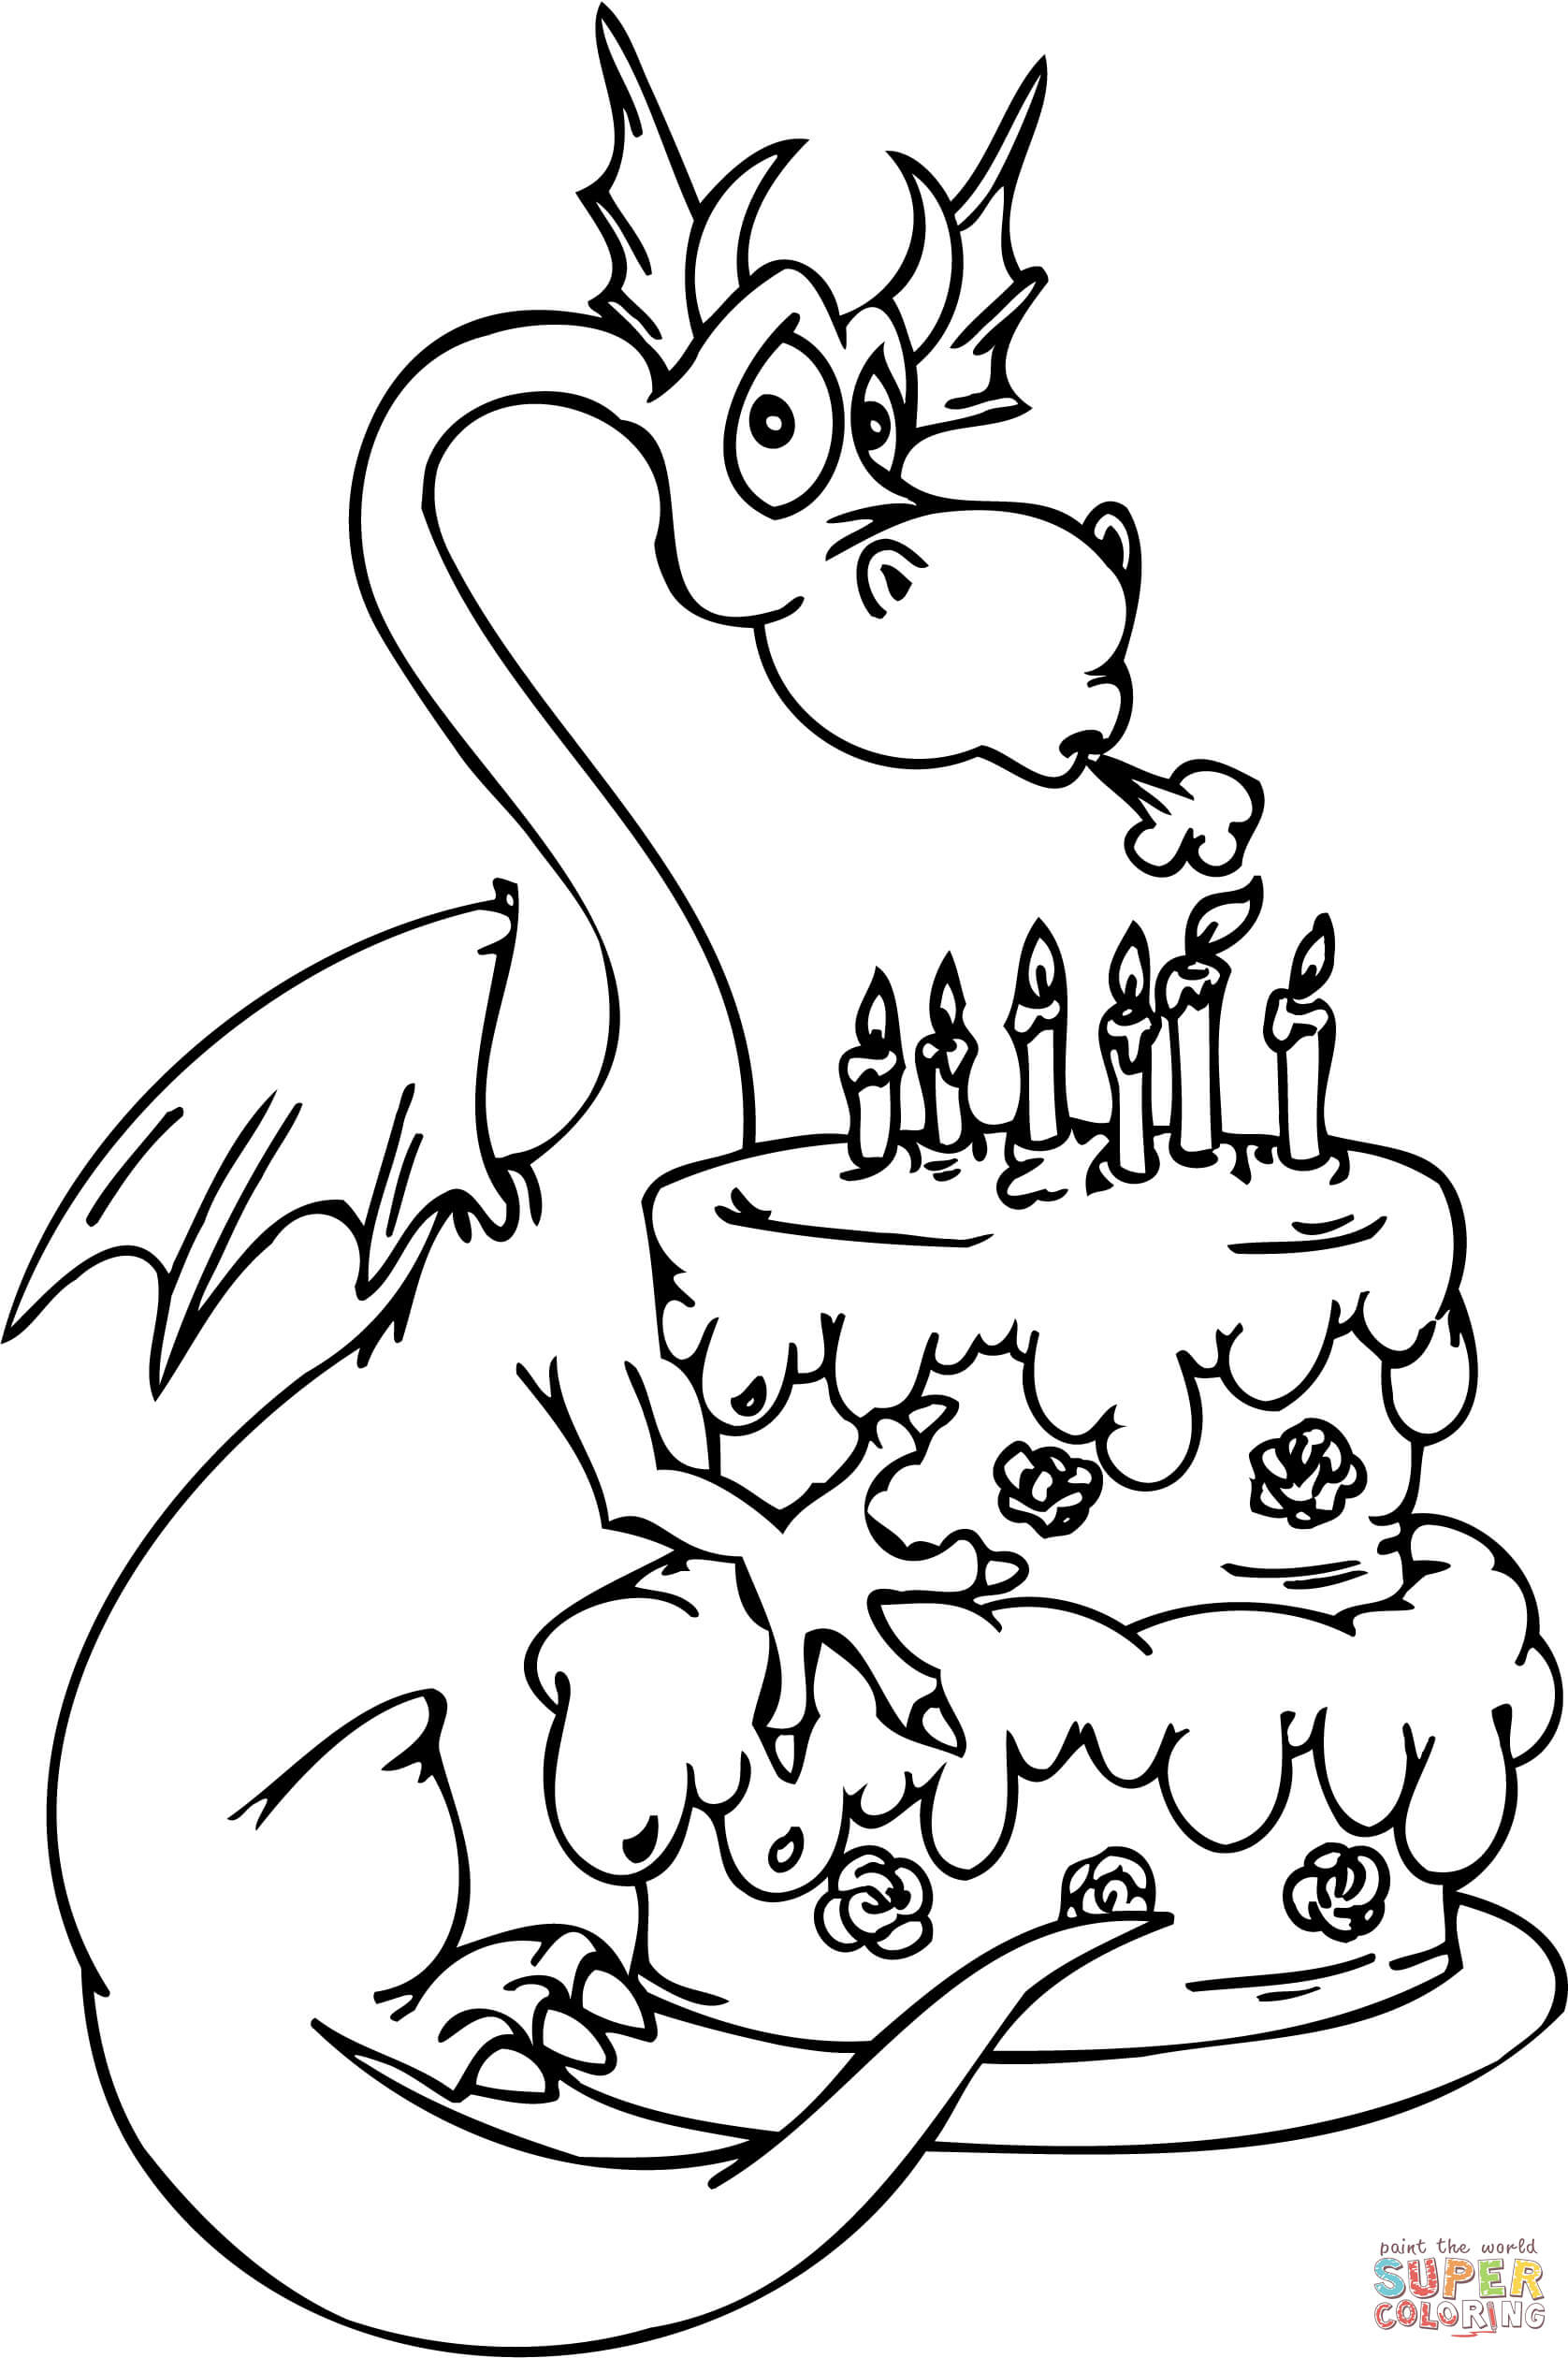 Dragon With Happy Birthday Cake Coloring Page | Free Printable - Free Printable Pictures Of Birthday Cakes